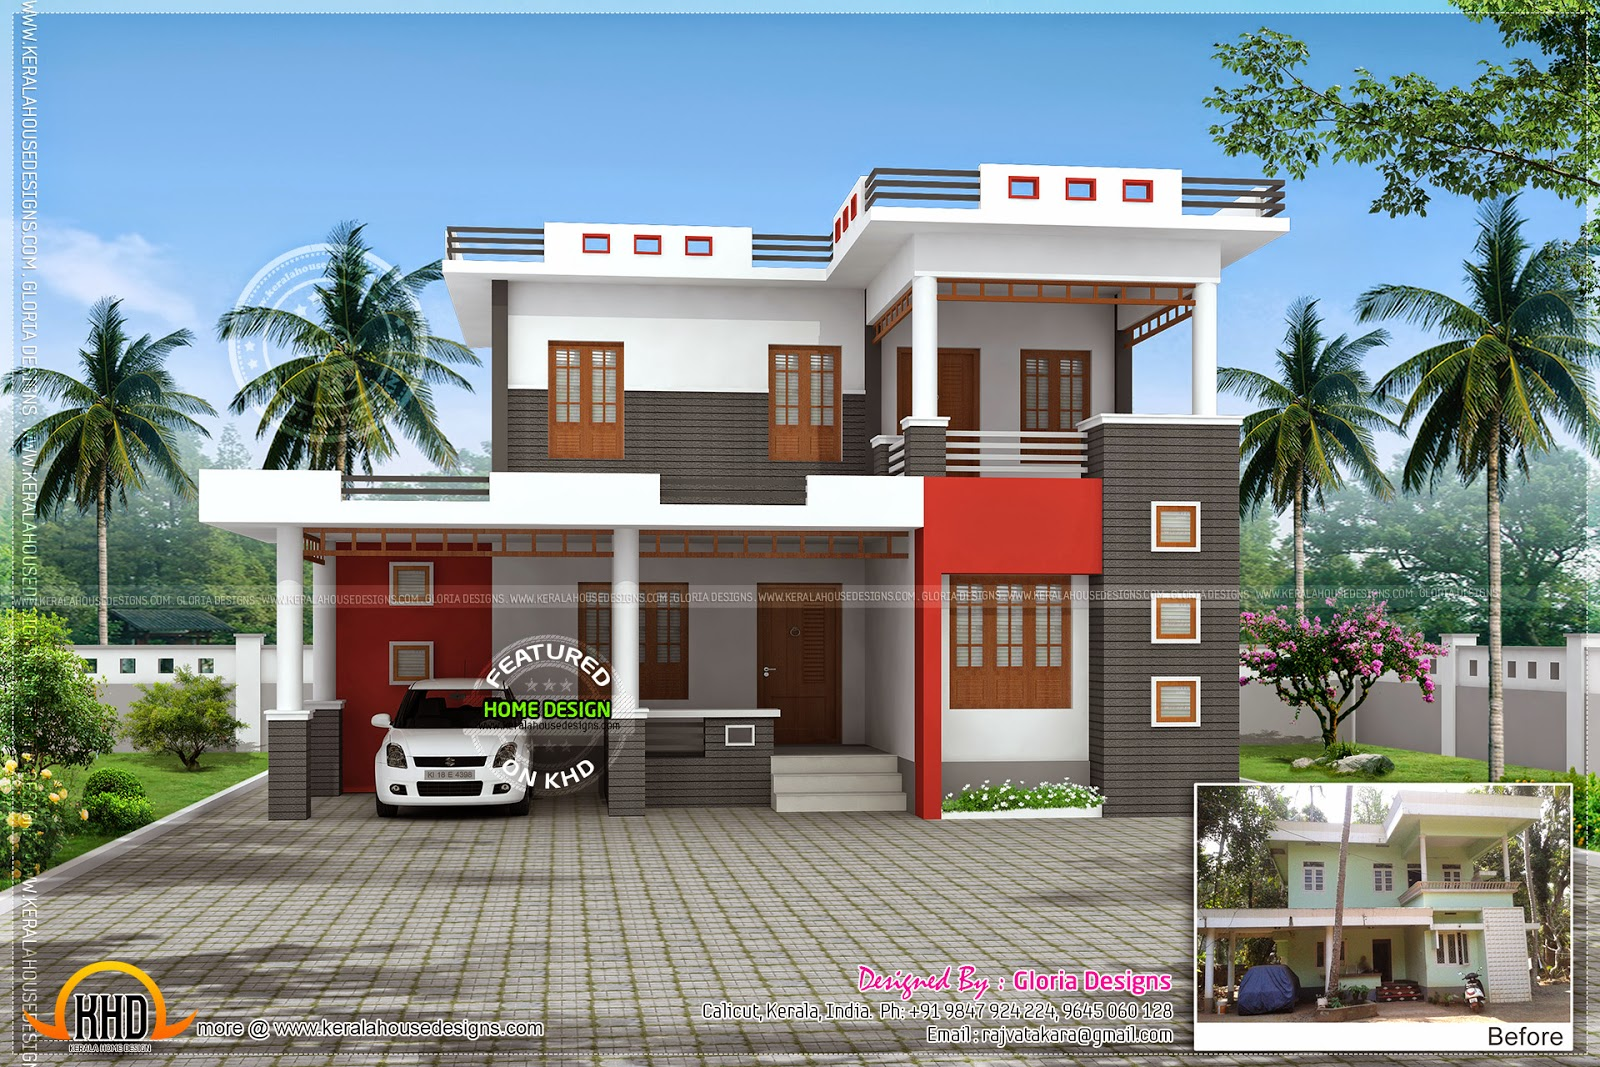 Renovation 3d model for an old house kerala home design for Home 3d model